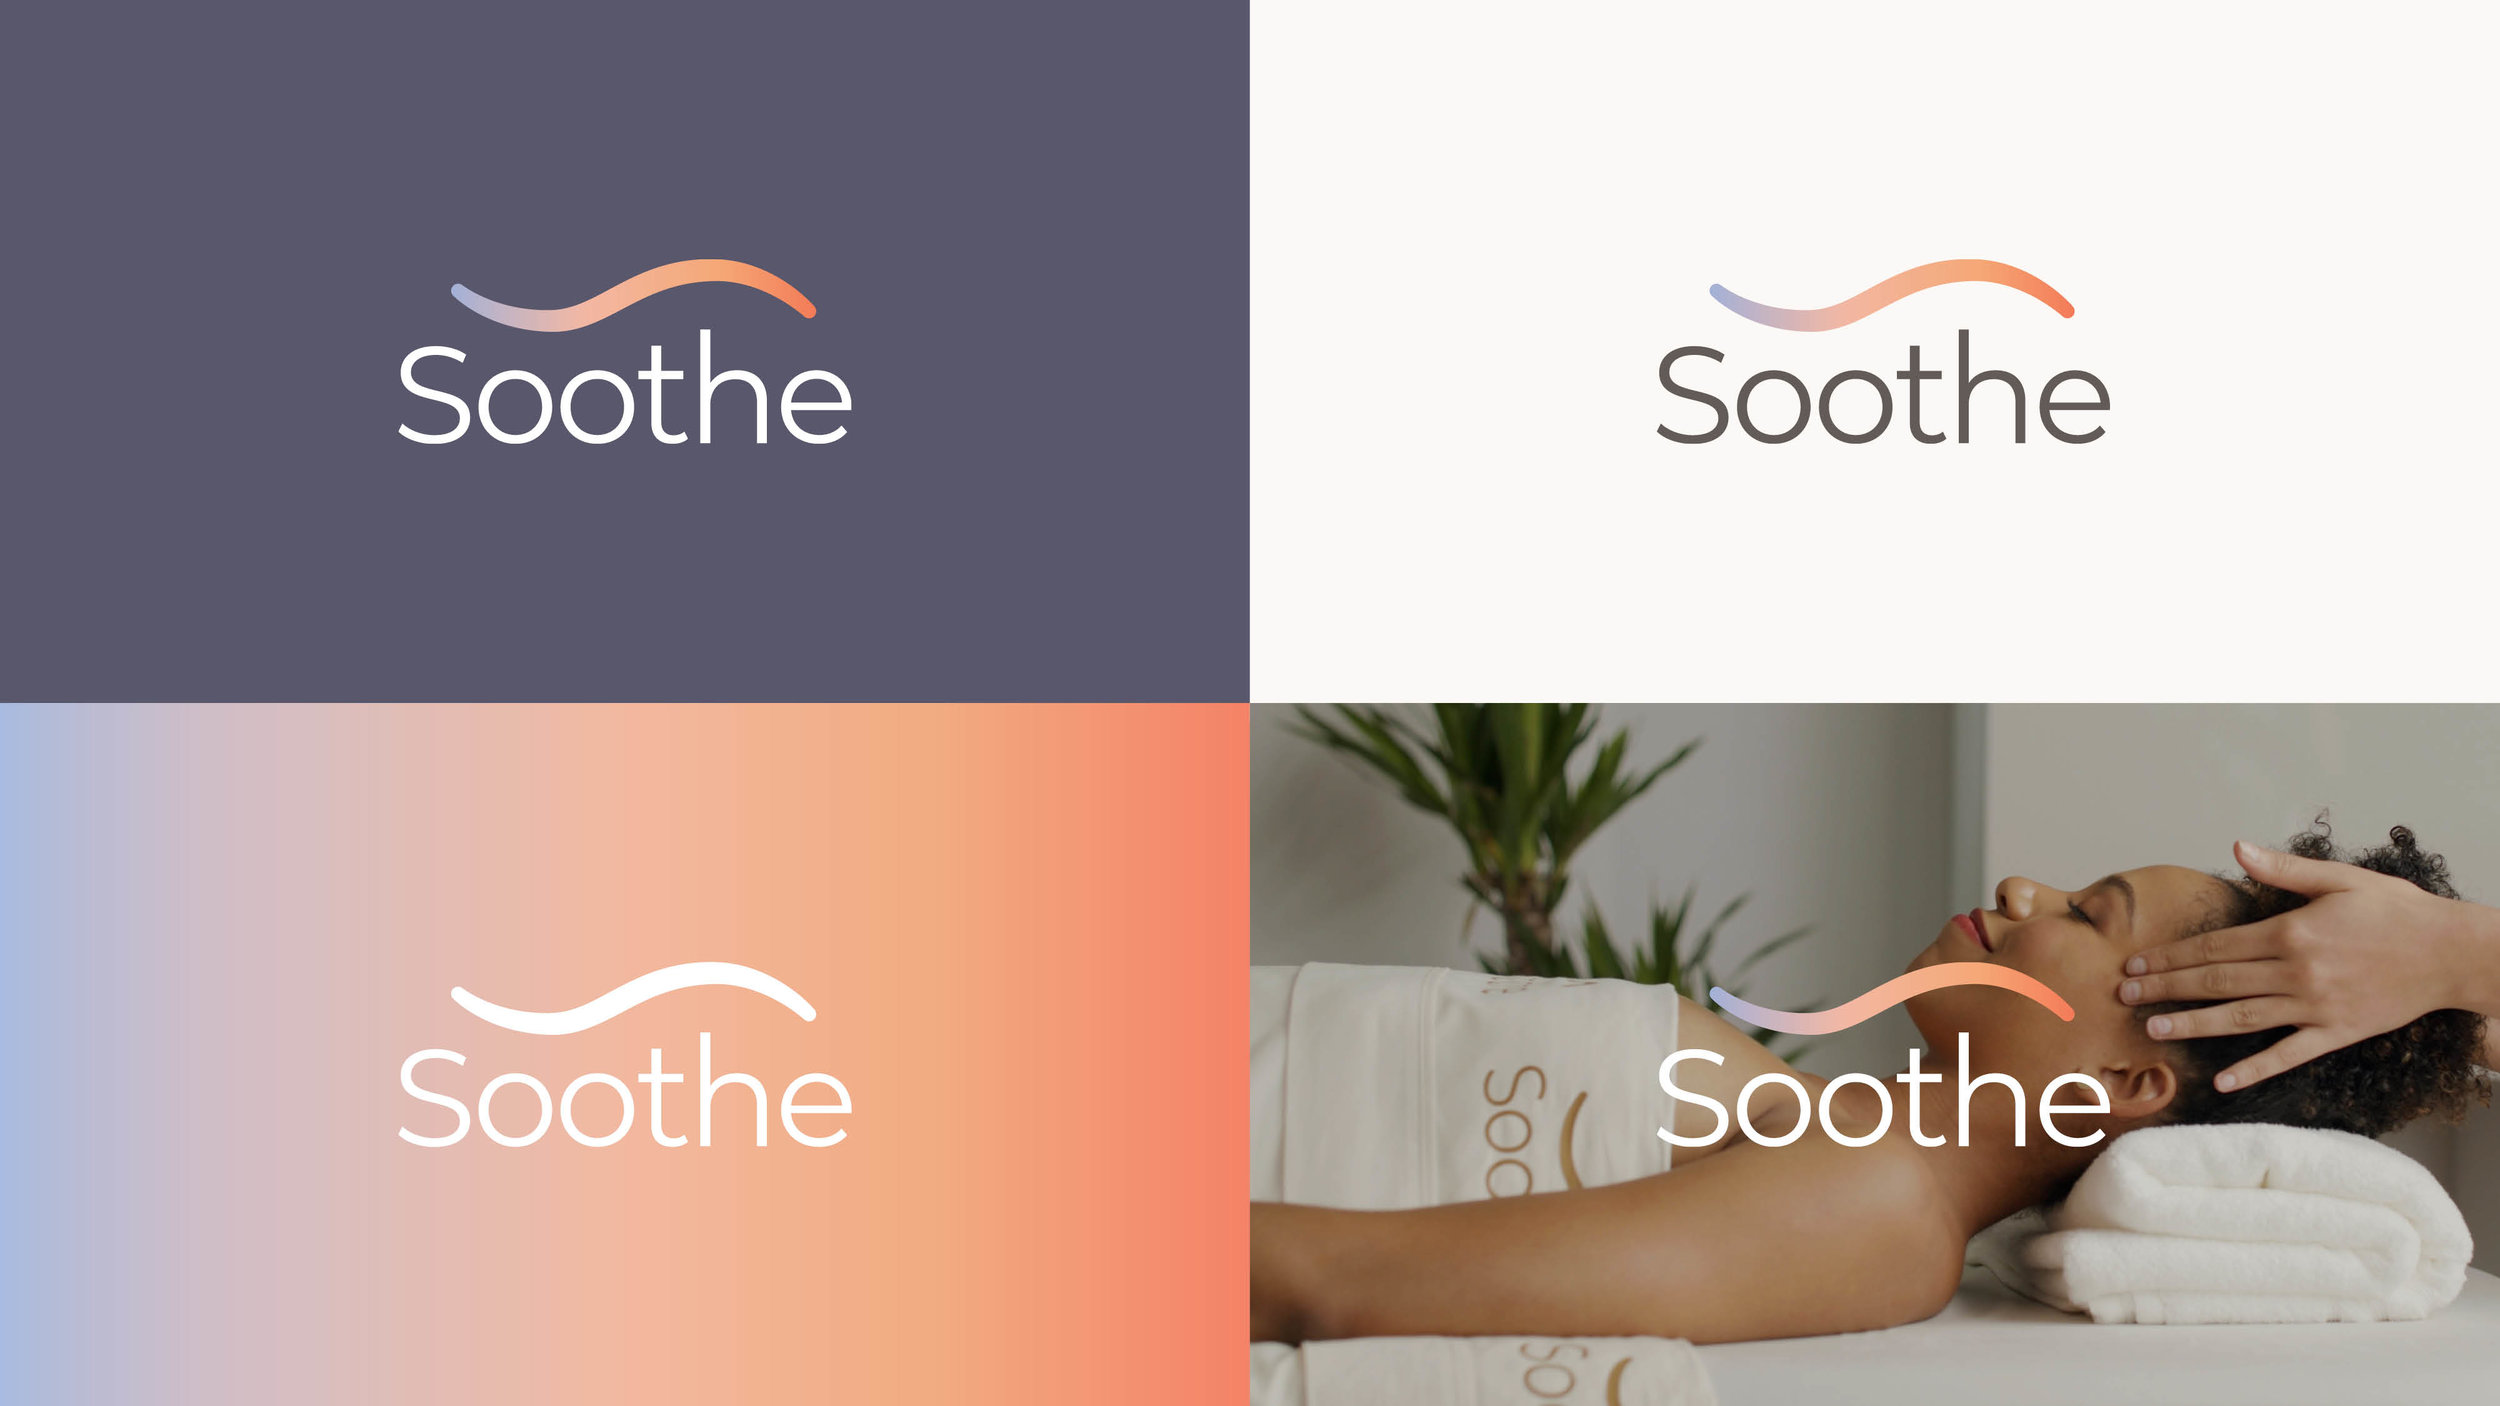 The new color palette is unique, flexible, and distinctive. It draws inspiration from the span of colors that guide us through the day, from dawn to dusk. Similarly, our typography is clean and simple, and evokes the clarity of a mind and body in sync.